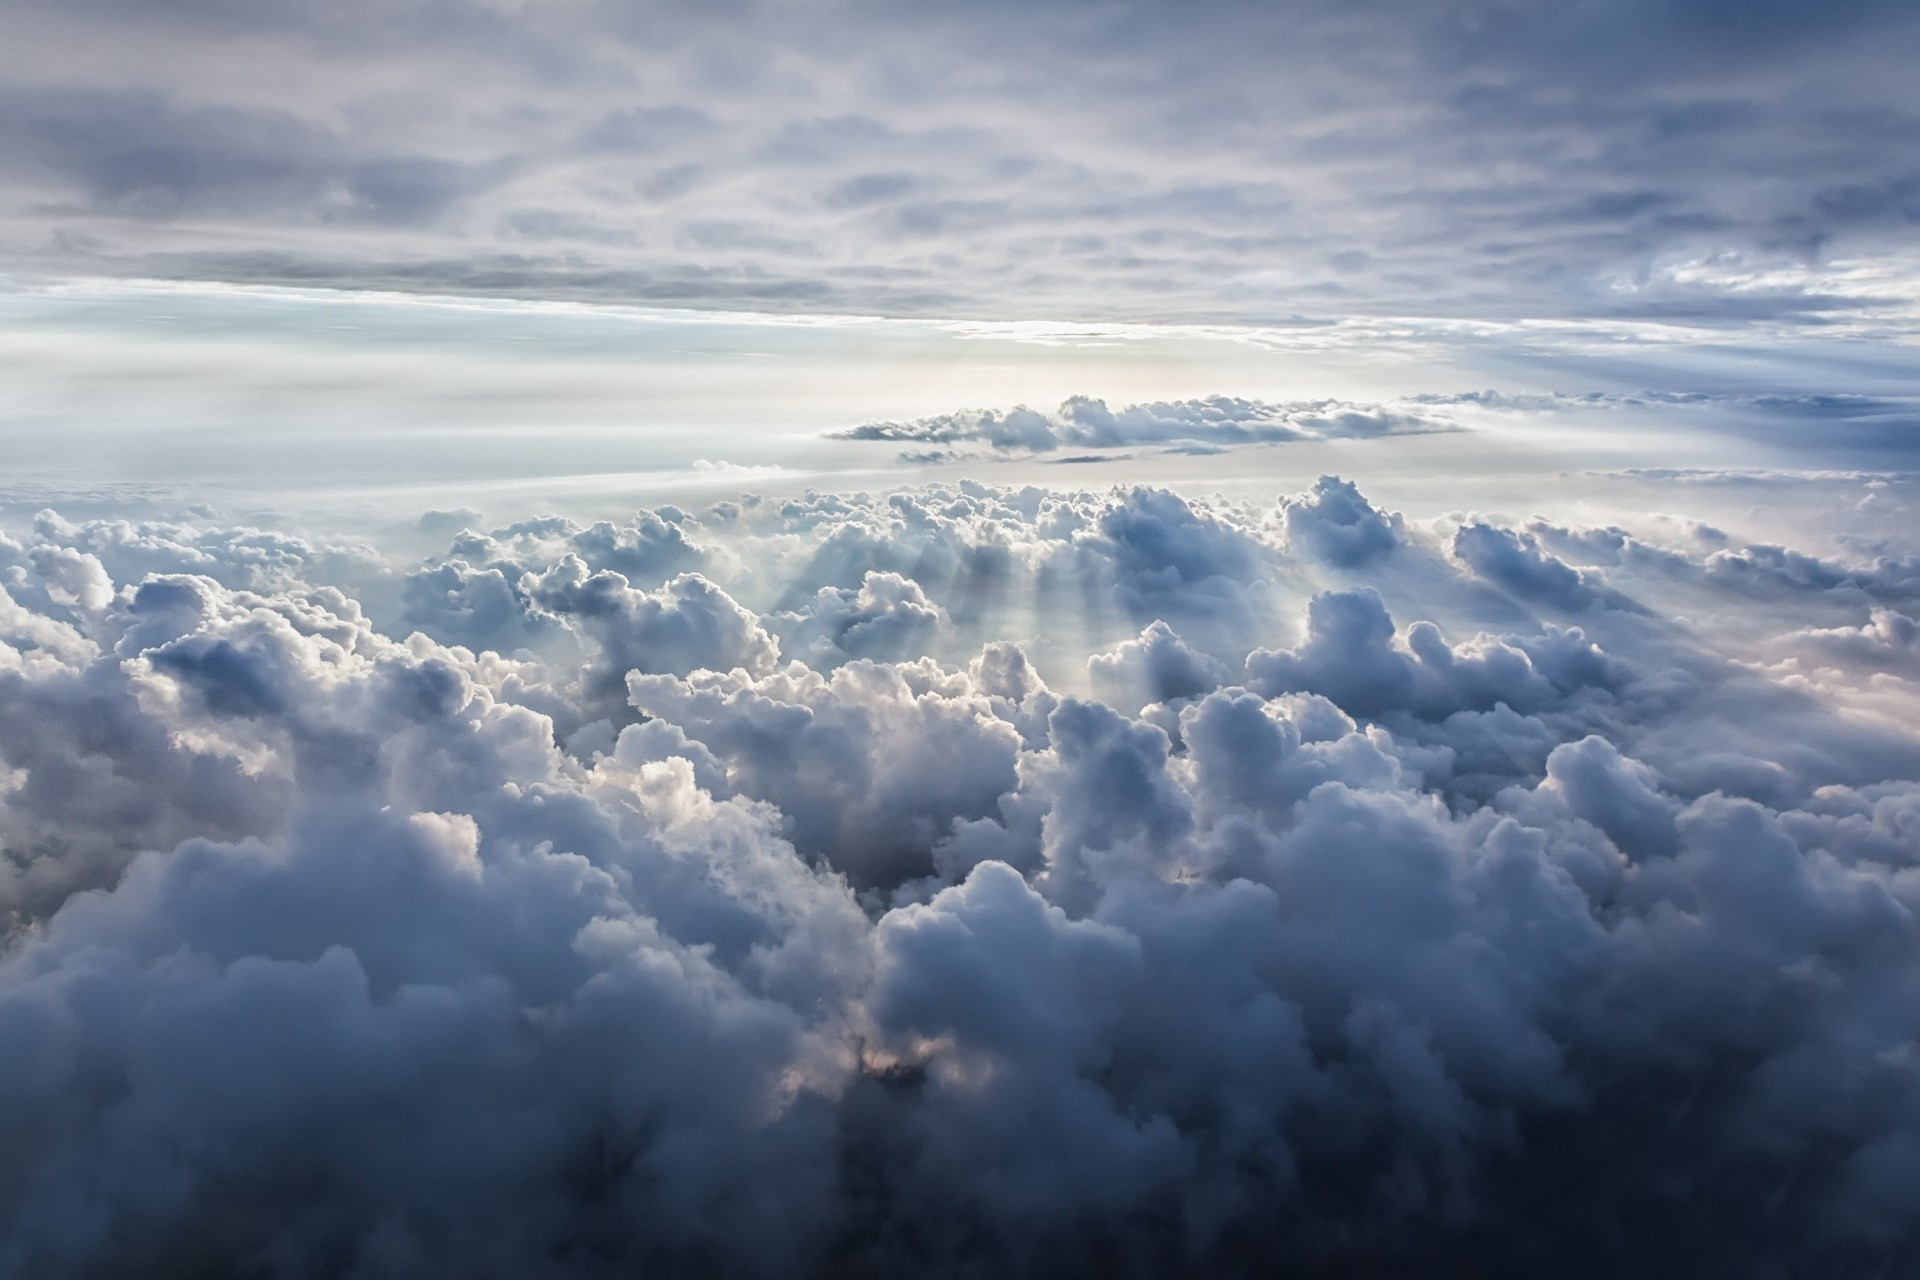 view from above clouds background free download #2002